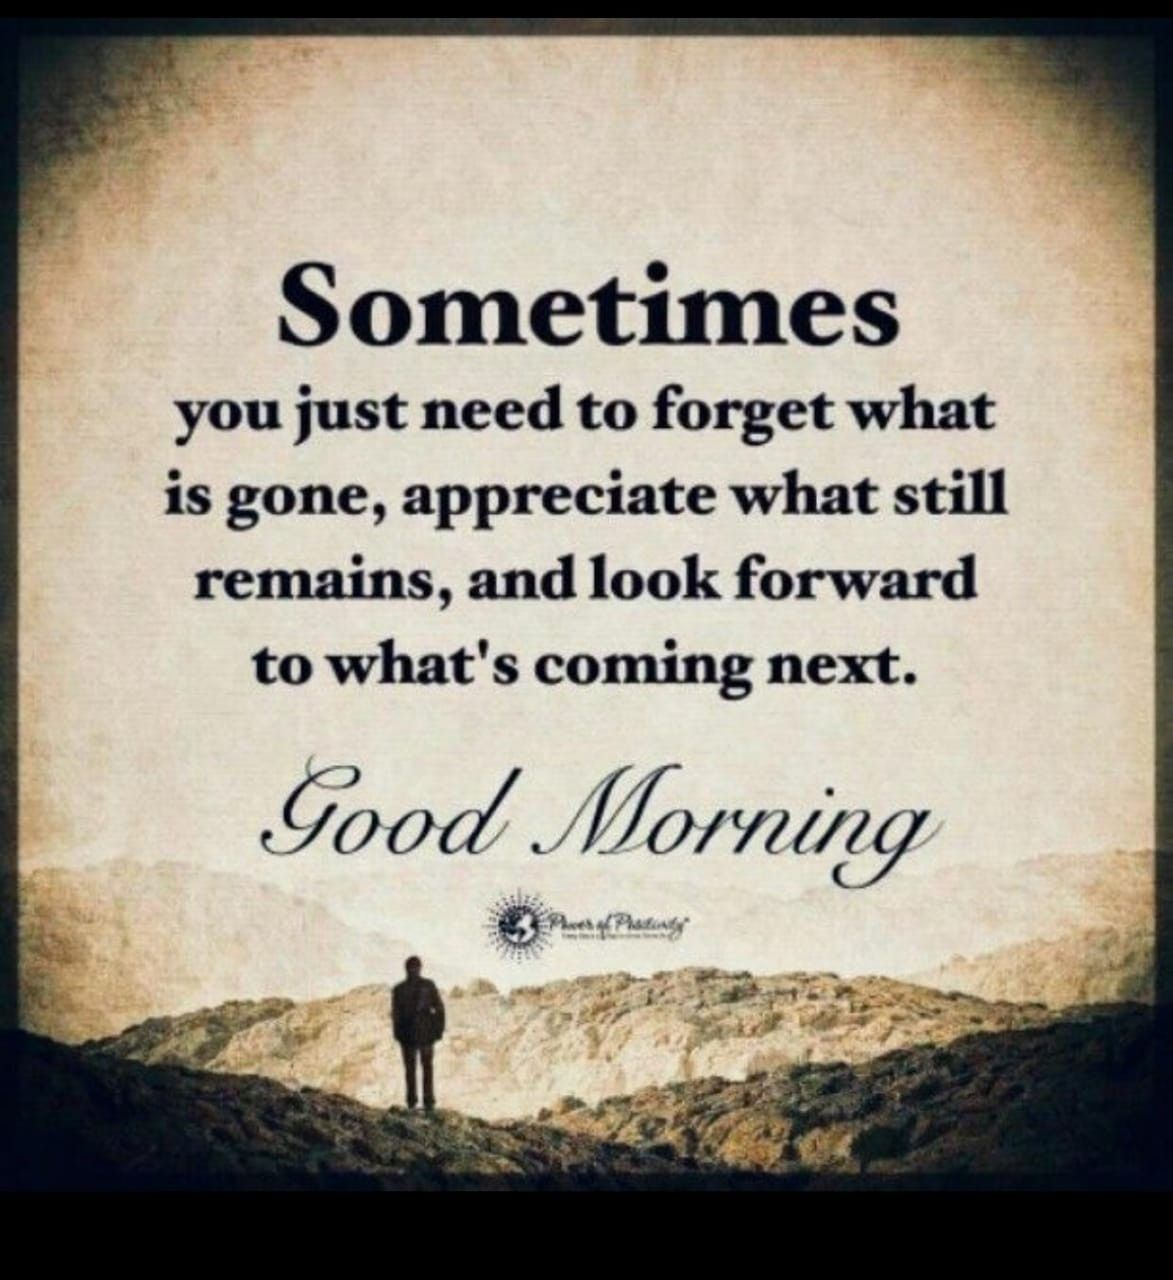 Good Morning Positive Quotes Regarding Really Encourage Daily Quotes Anoukinvit In 2020 Morning Inspirational Quotes Good Morning Quotes Daily Encouragement Quotes